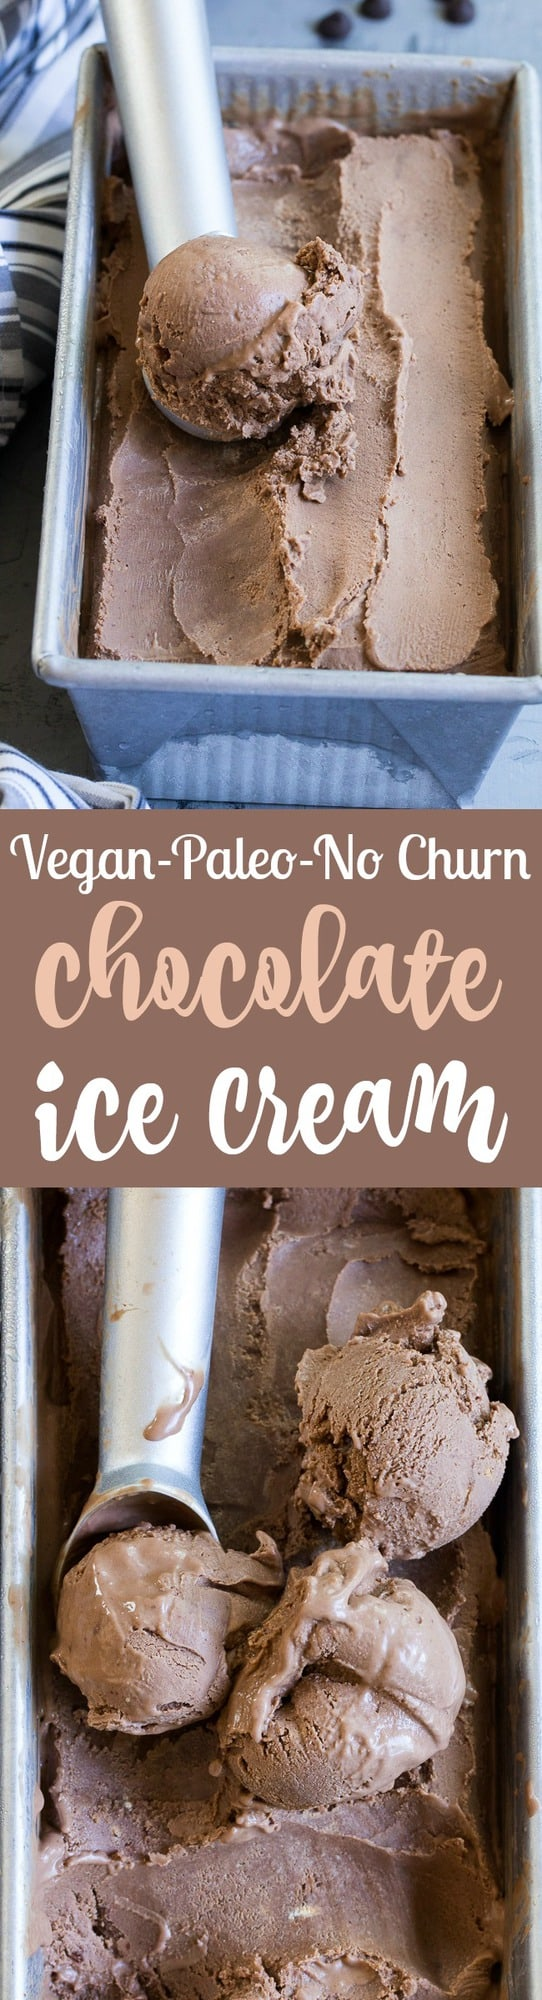 This no-churn chocolate coconut milk ice cream is so rich and creamy that you'd never guess it's vegan and paleo! Almond butter adds creaminess to the texture and raw cacao plus pure maple syrup give this coconut milk ice cream a rich dark chocolate flavor. Dairy-free, soy free, refined-sugar-free, easy to make!